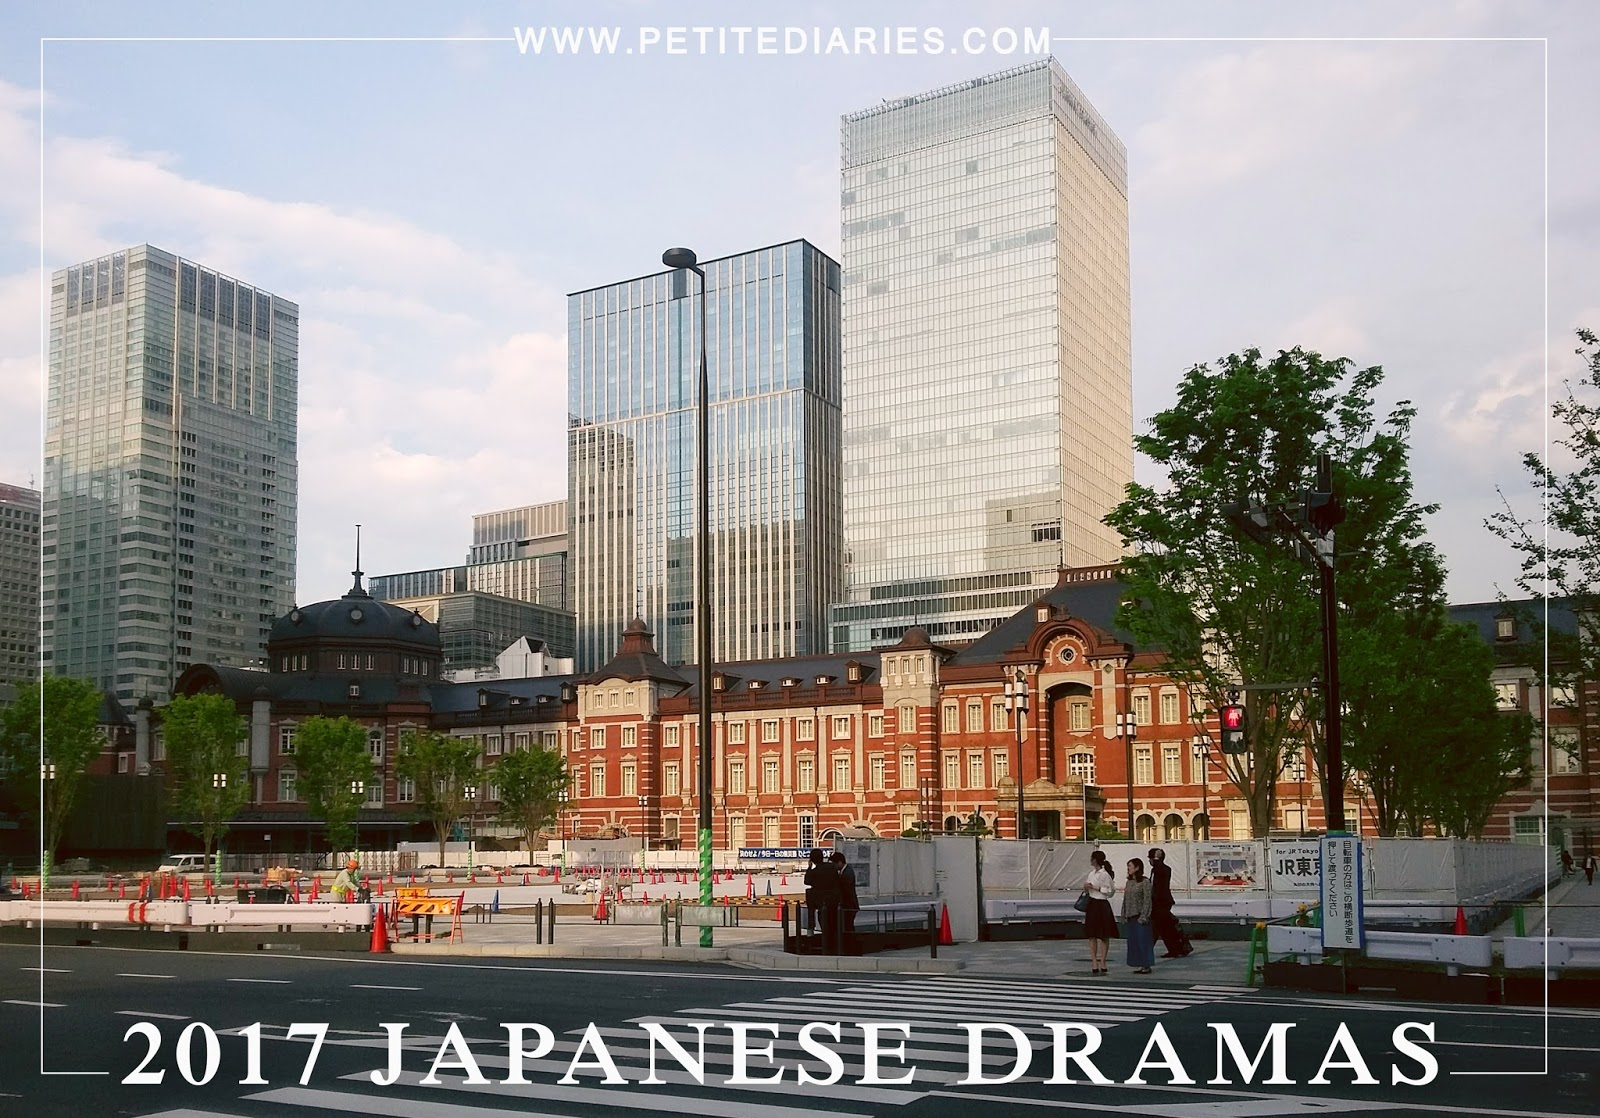 japanese dramas 2017 favorite